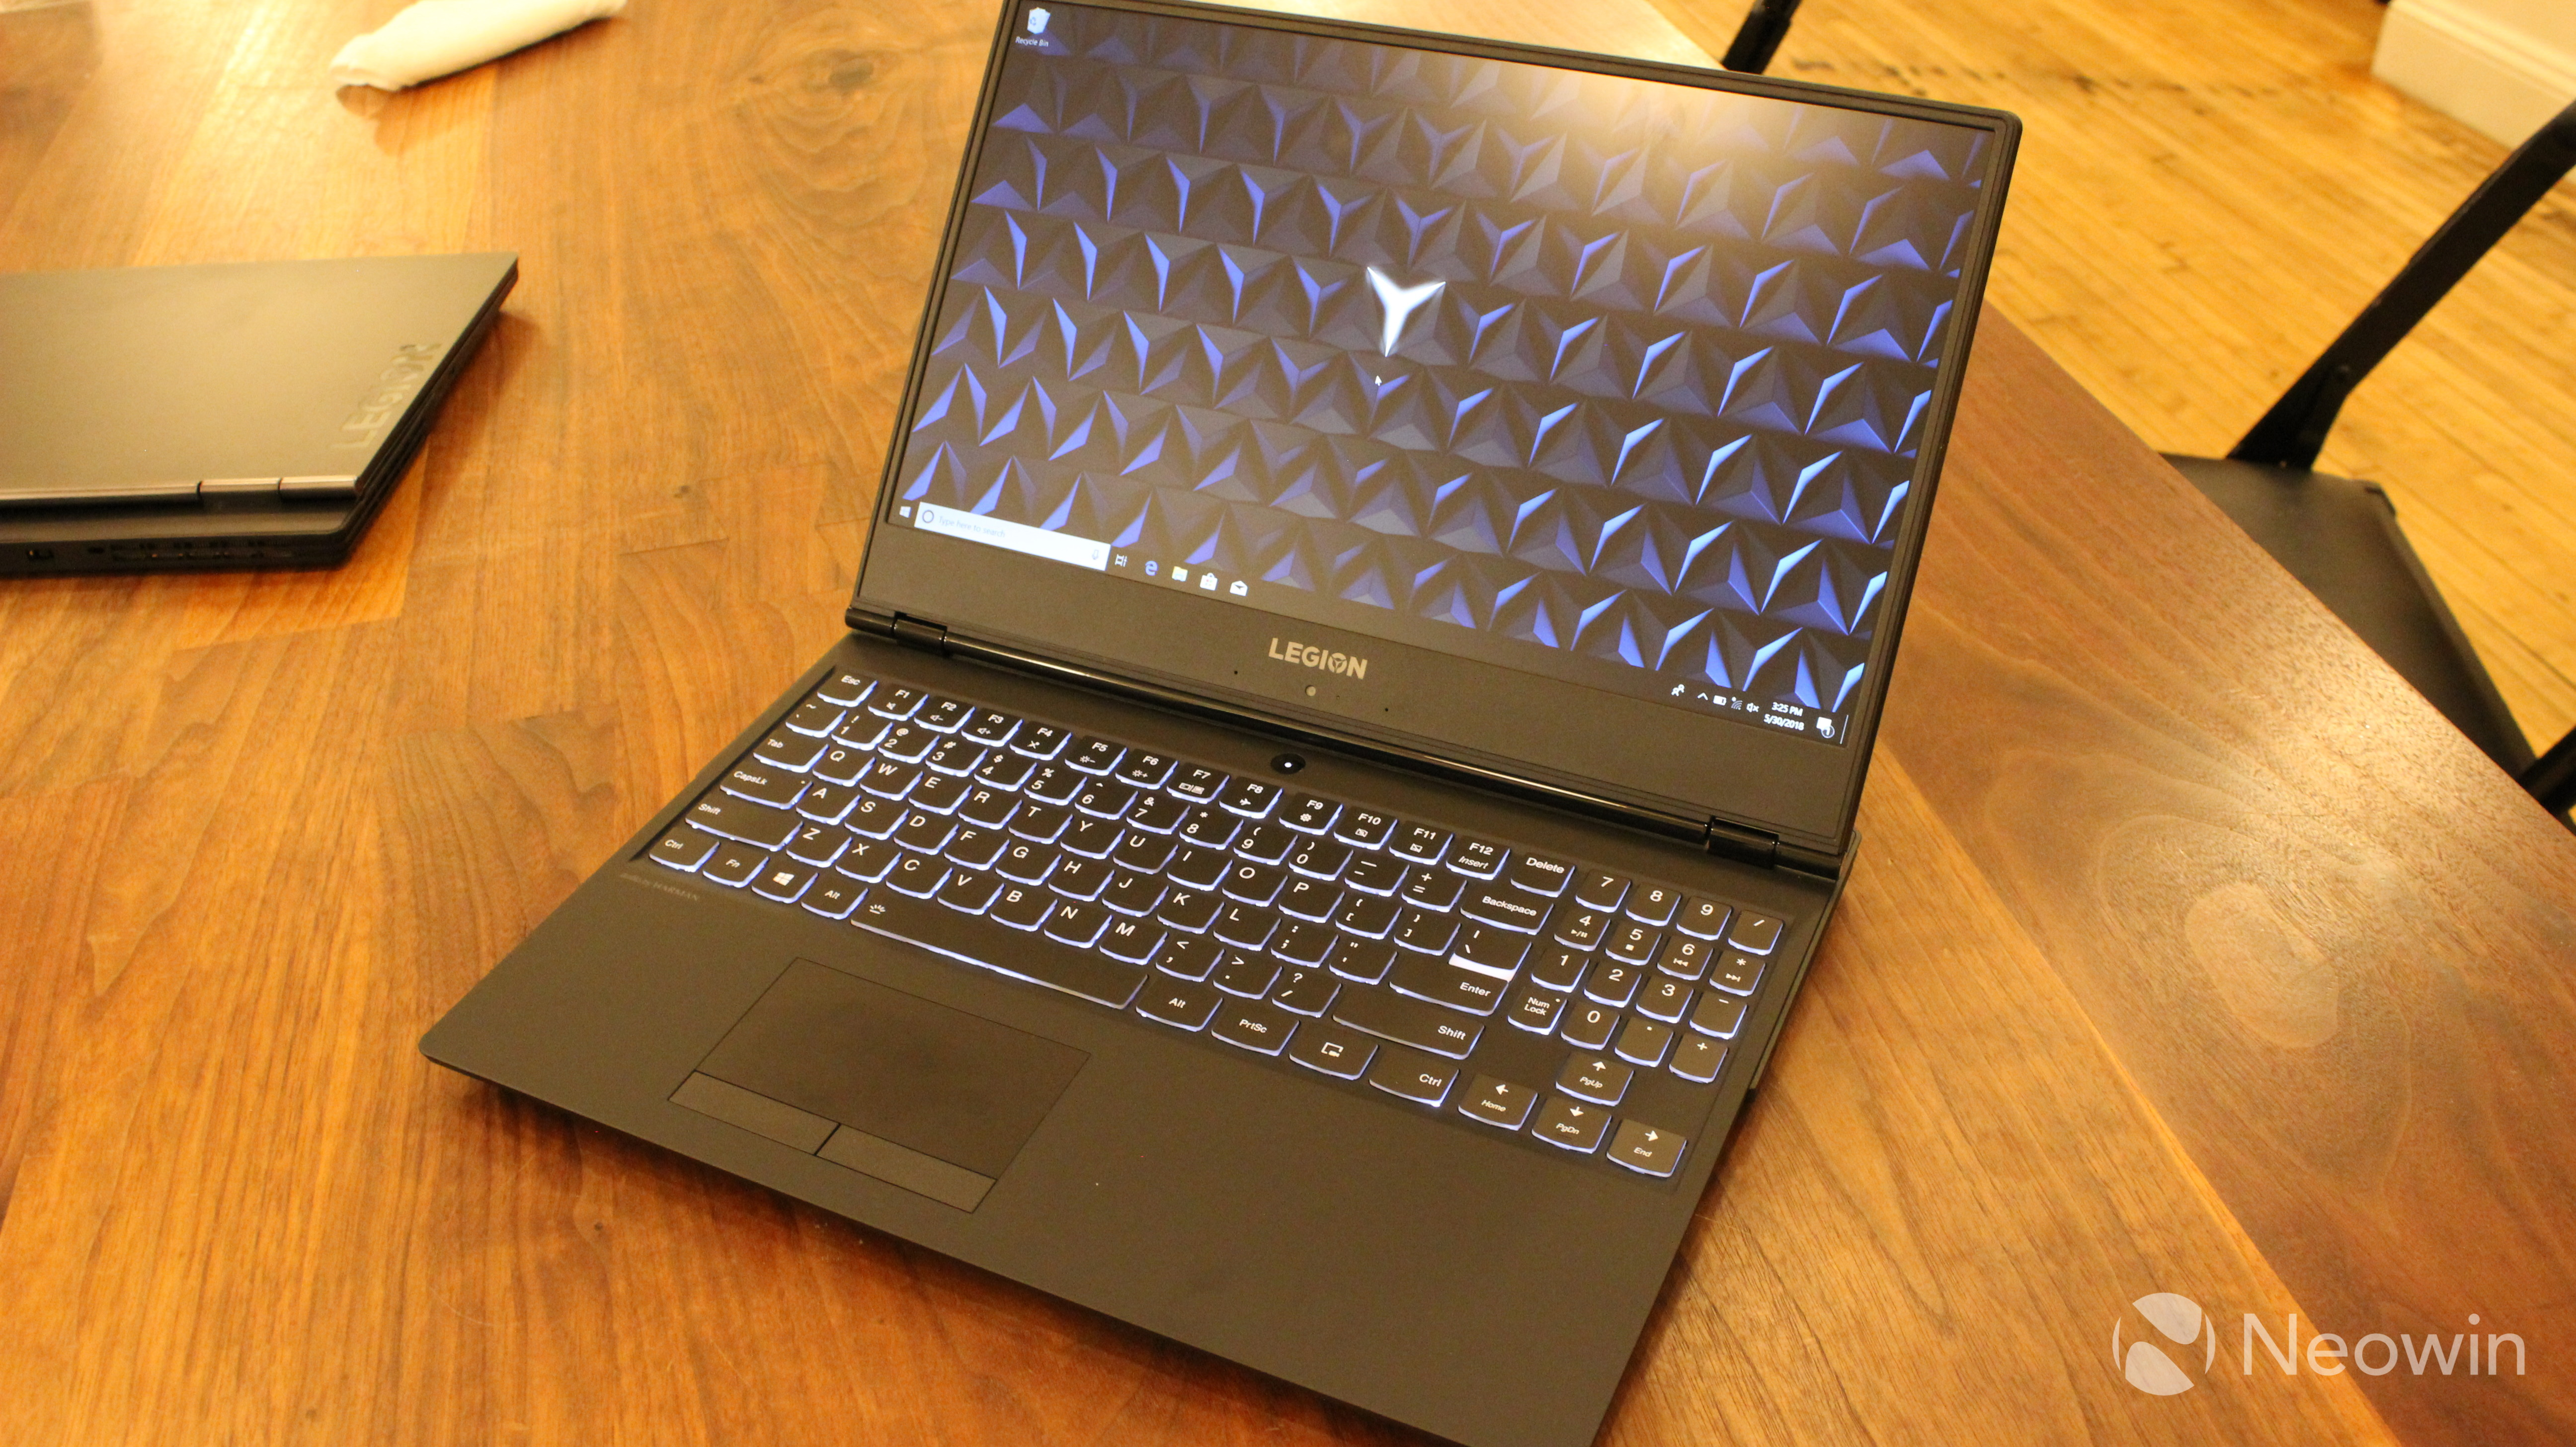 Lenovo Legion Y530 unboxing: Casual gaming looks pretty sweet - Neowin